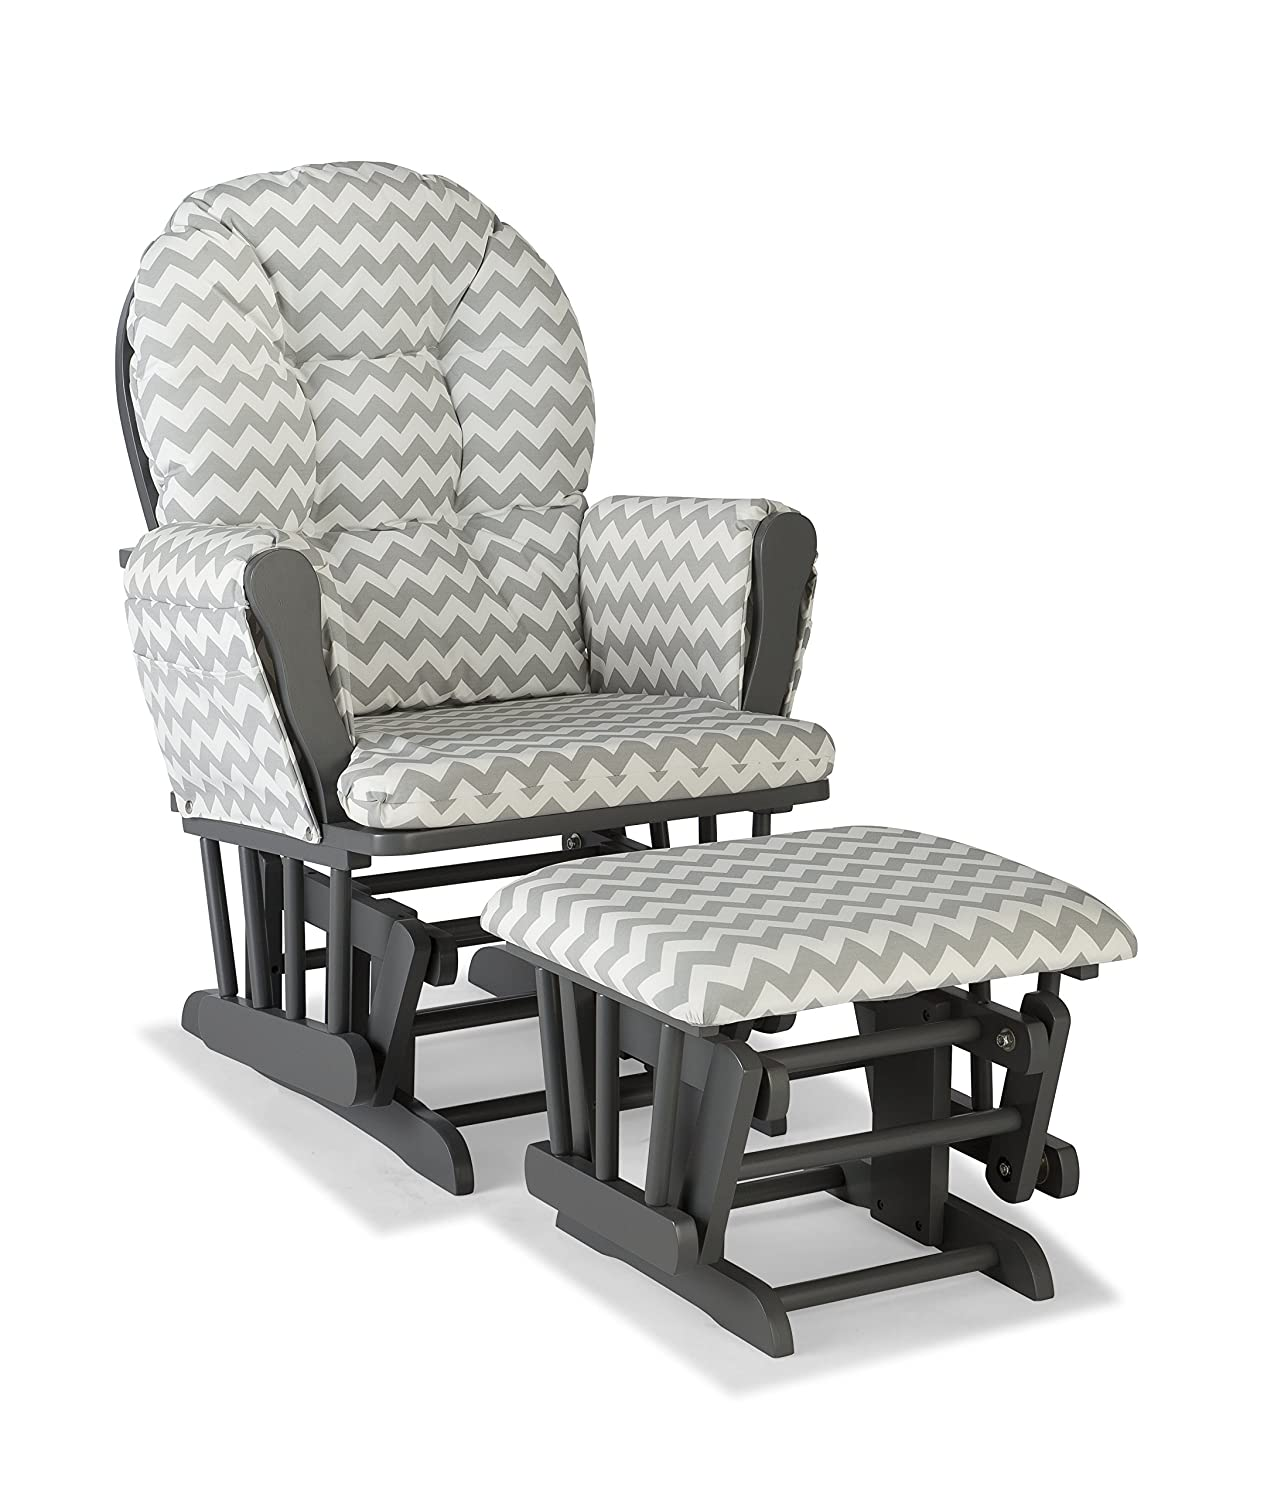 Storkcraft Hoop Custom Glider and Ottoman, Gray/Gray Chevron 06550-610G